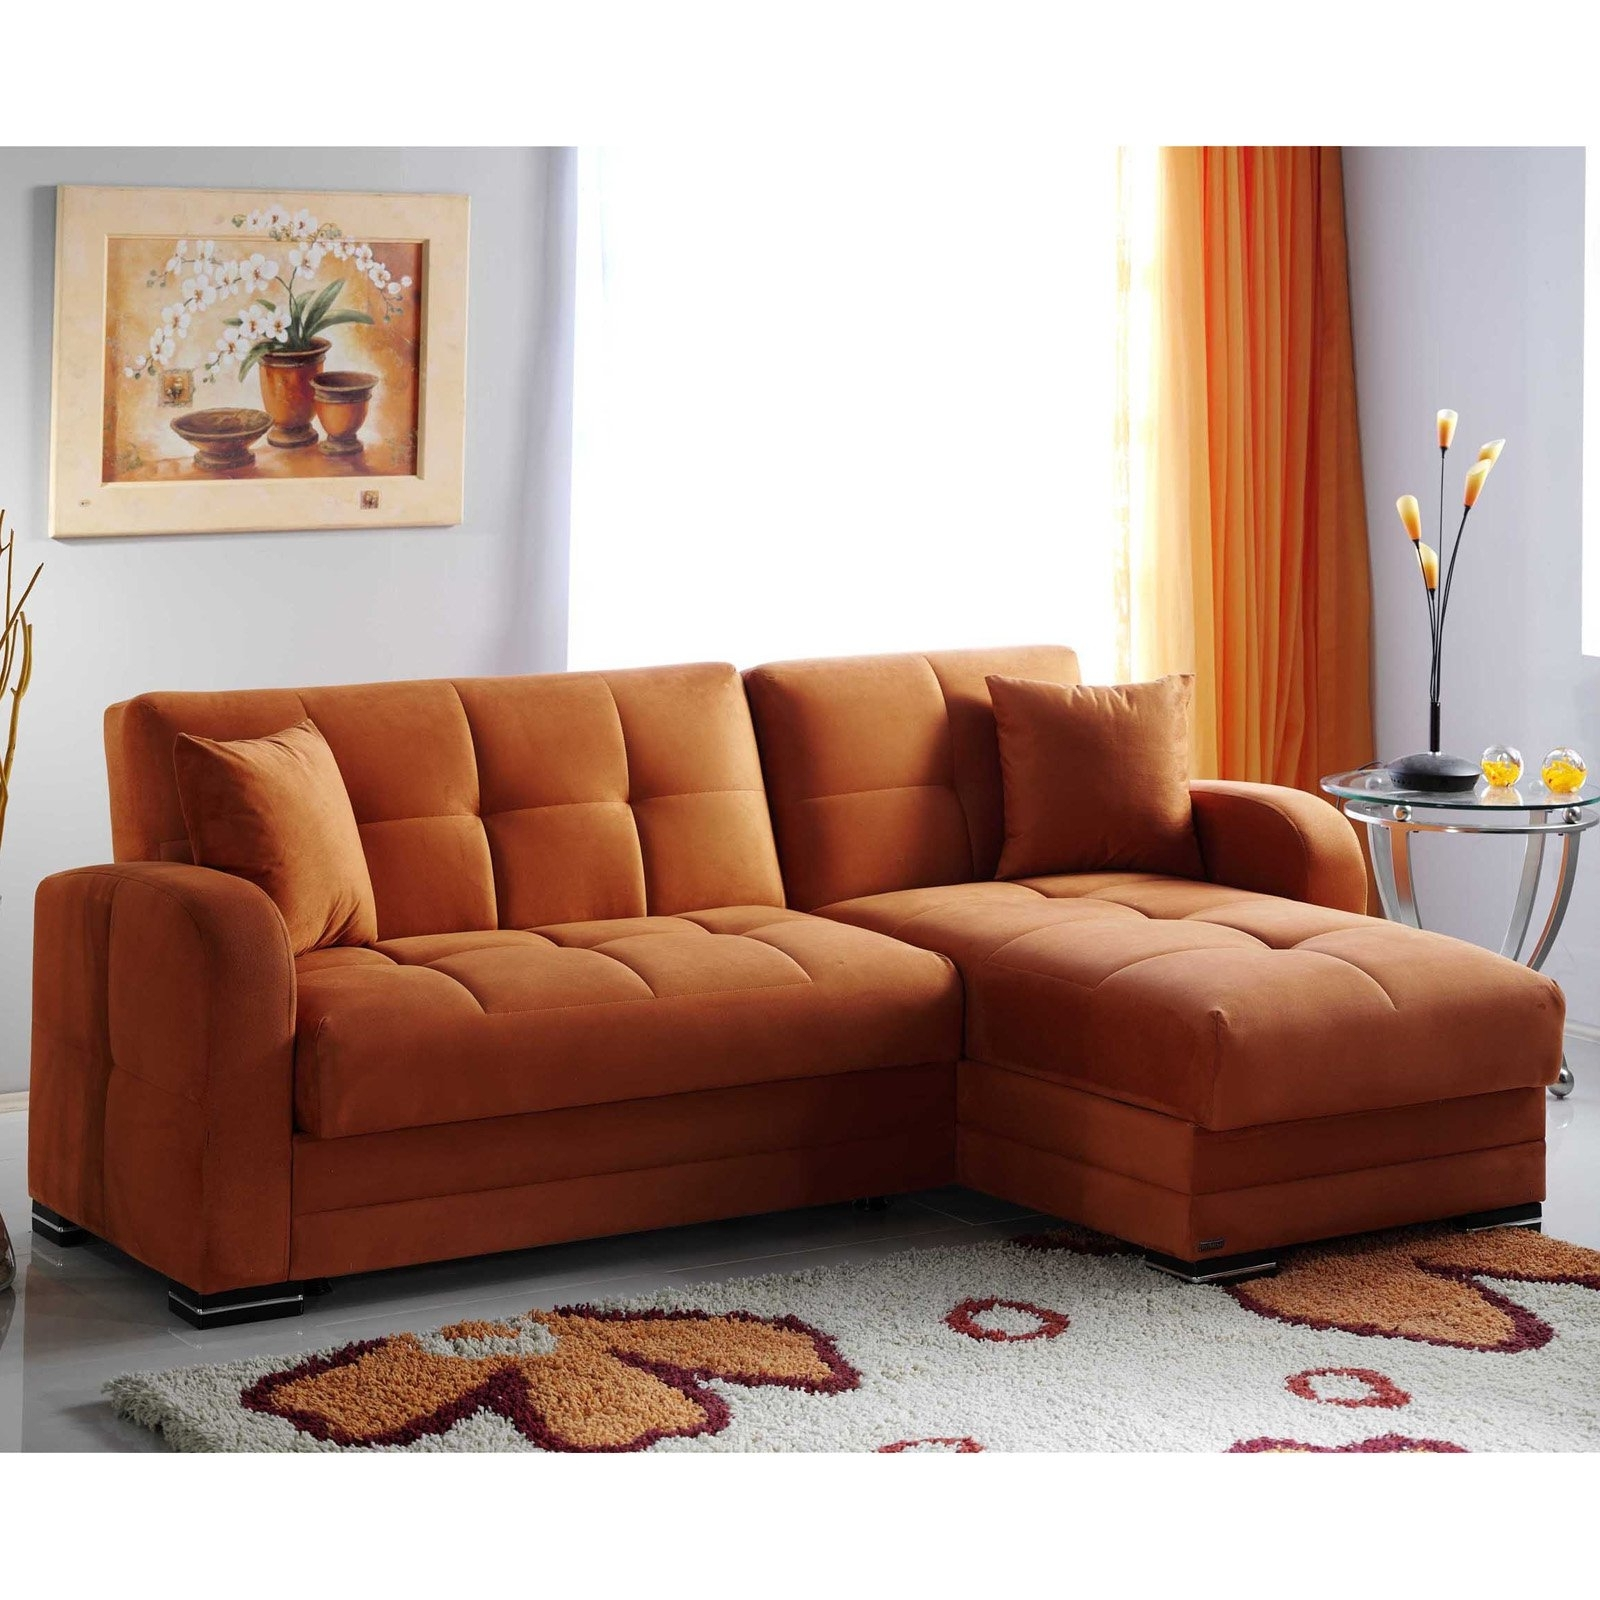 Orange Sectional Sofas With Regard To Favorite Kubo Sectional Sofa (View 14 of 15)